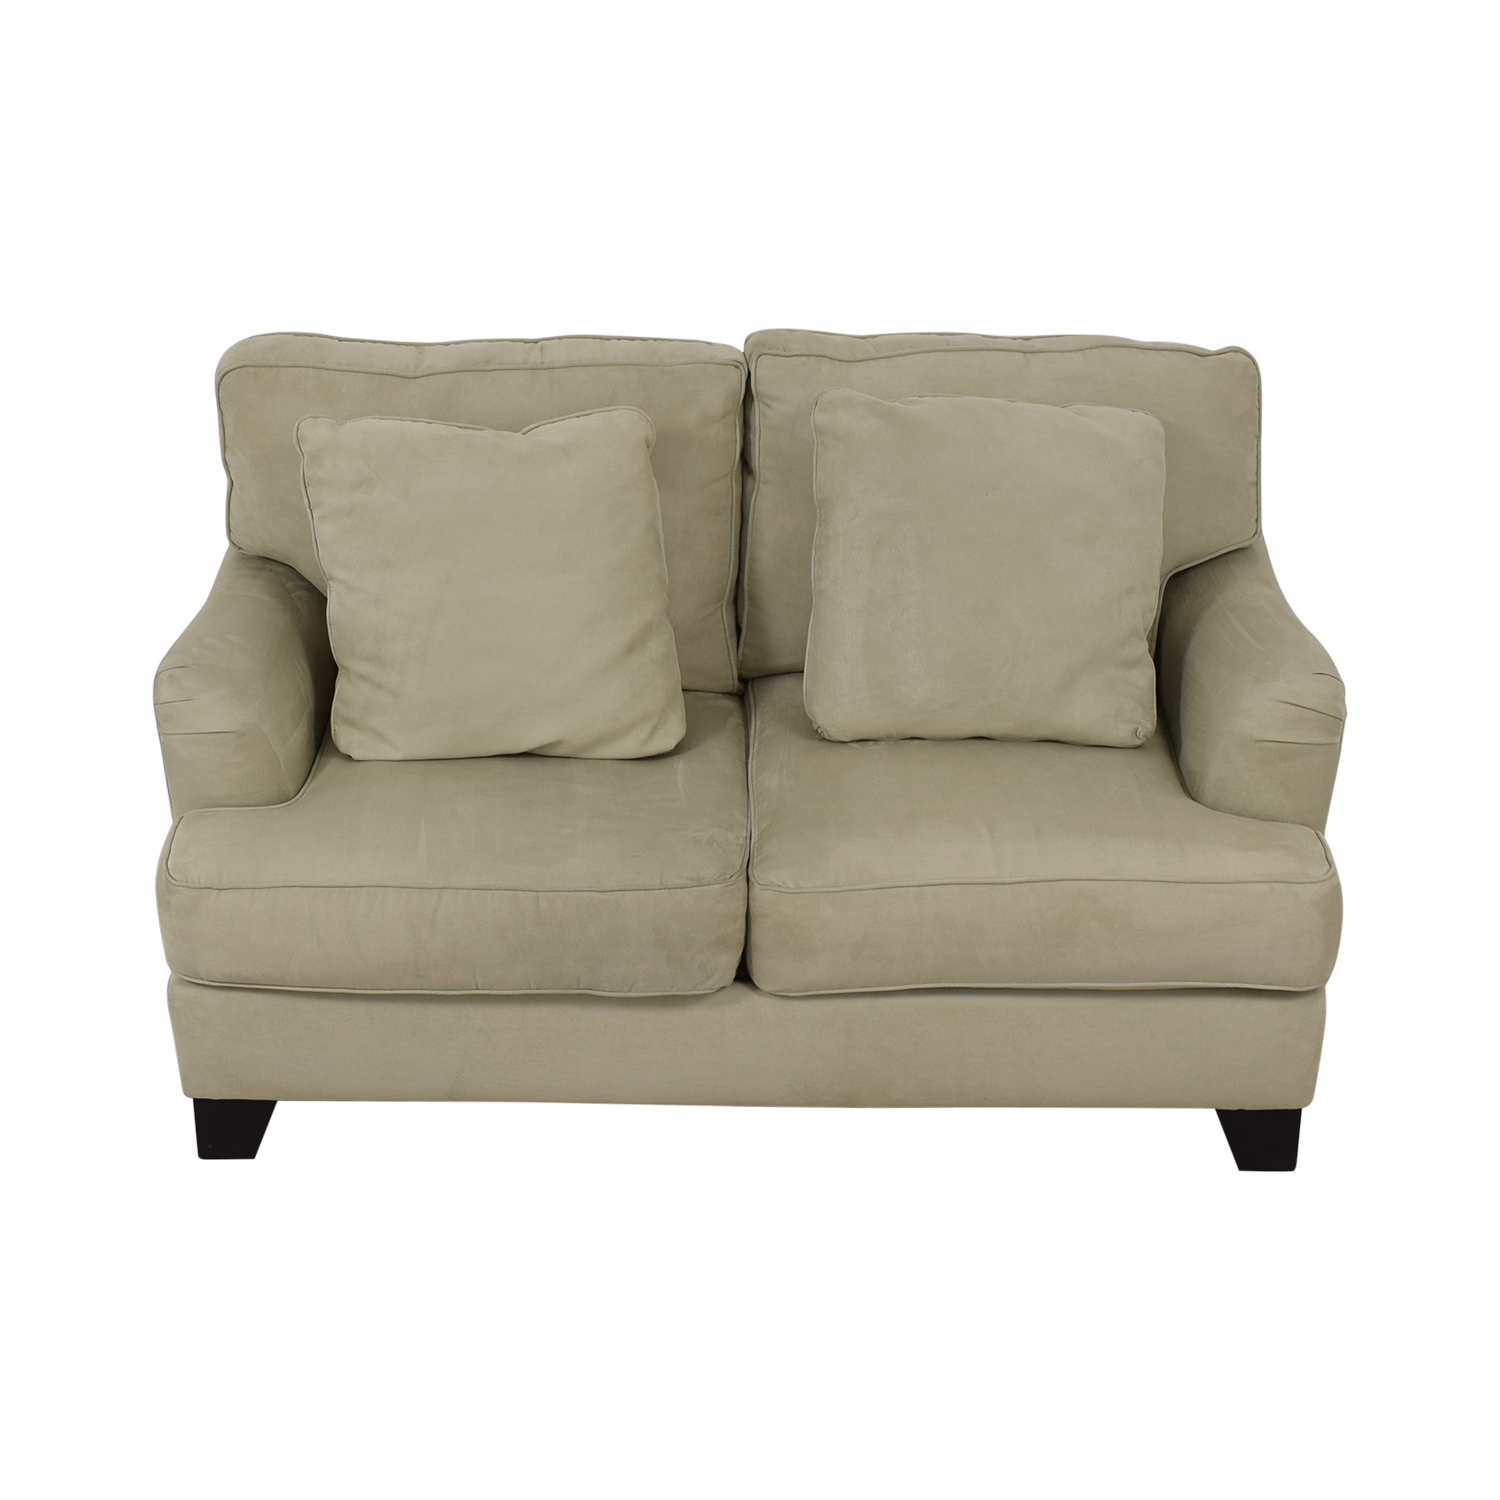 buy Bloomingdale's Loveseat Bloomingdale's Loveseats